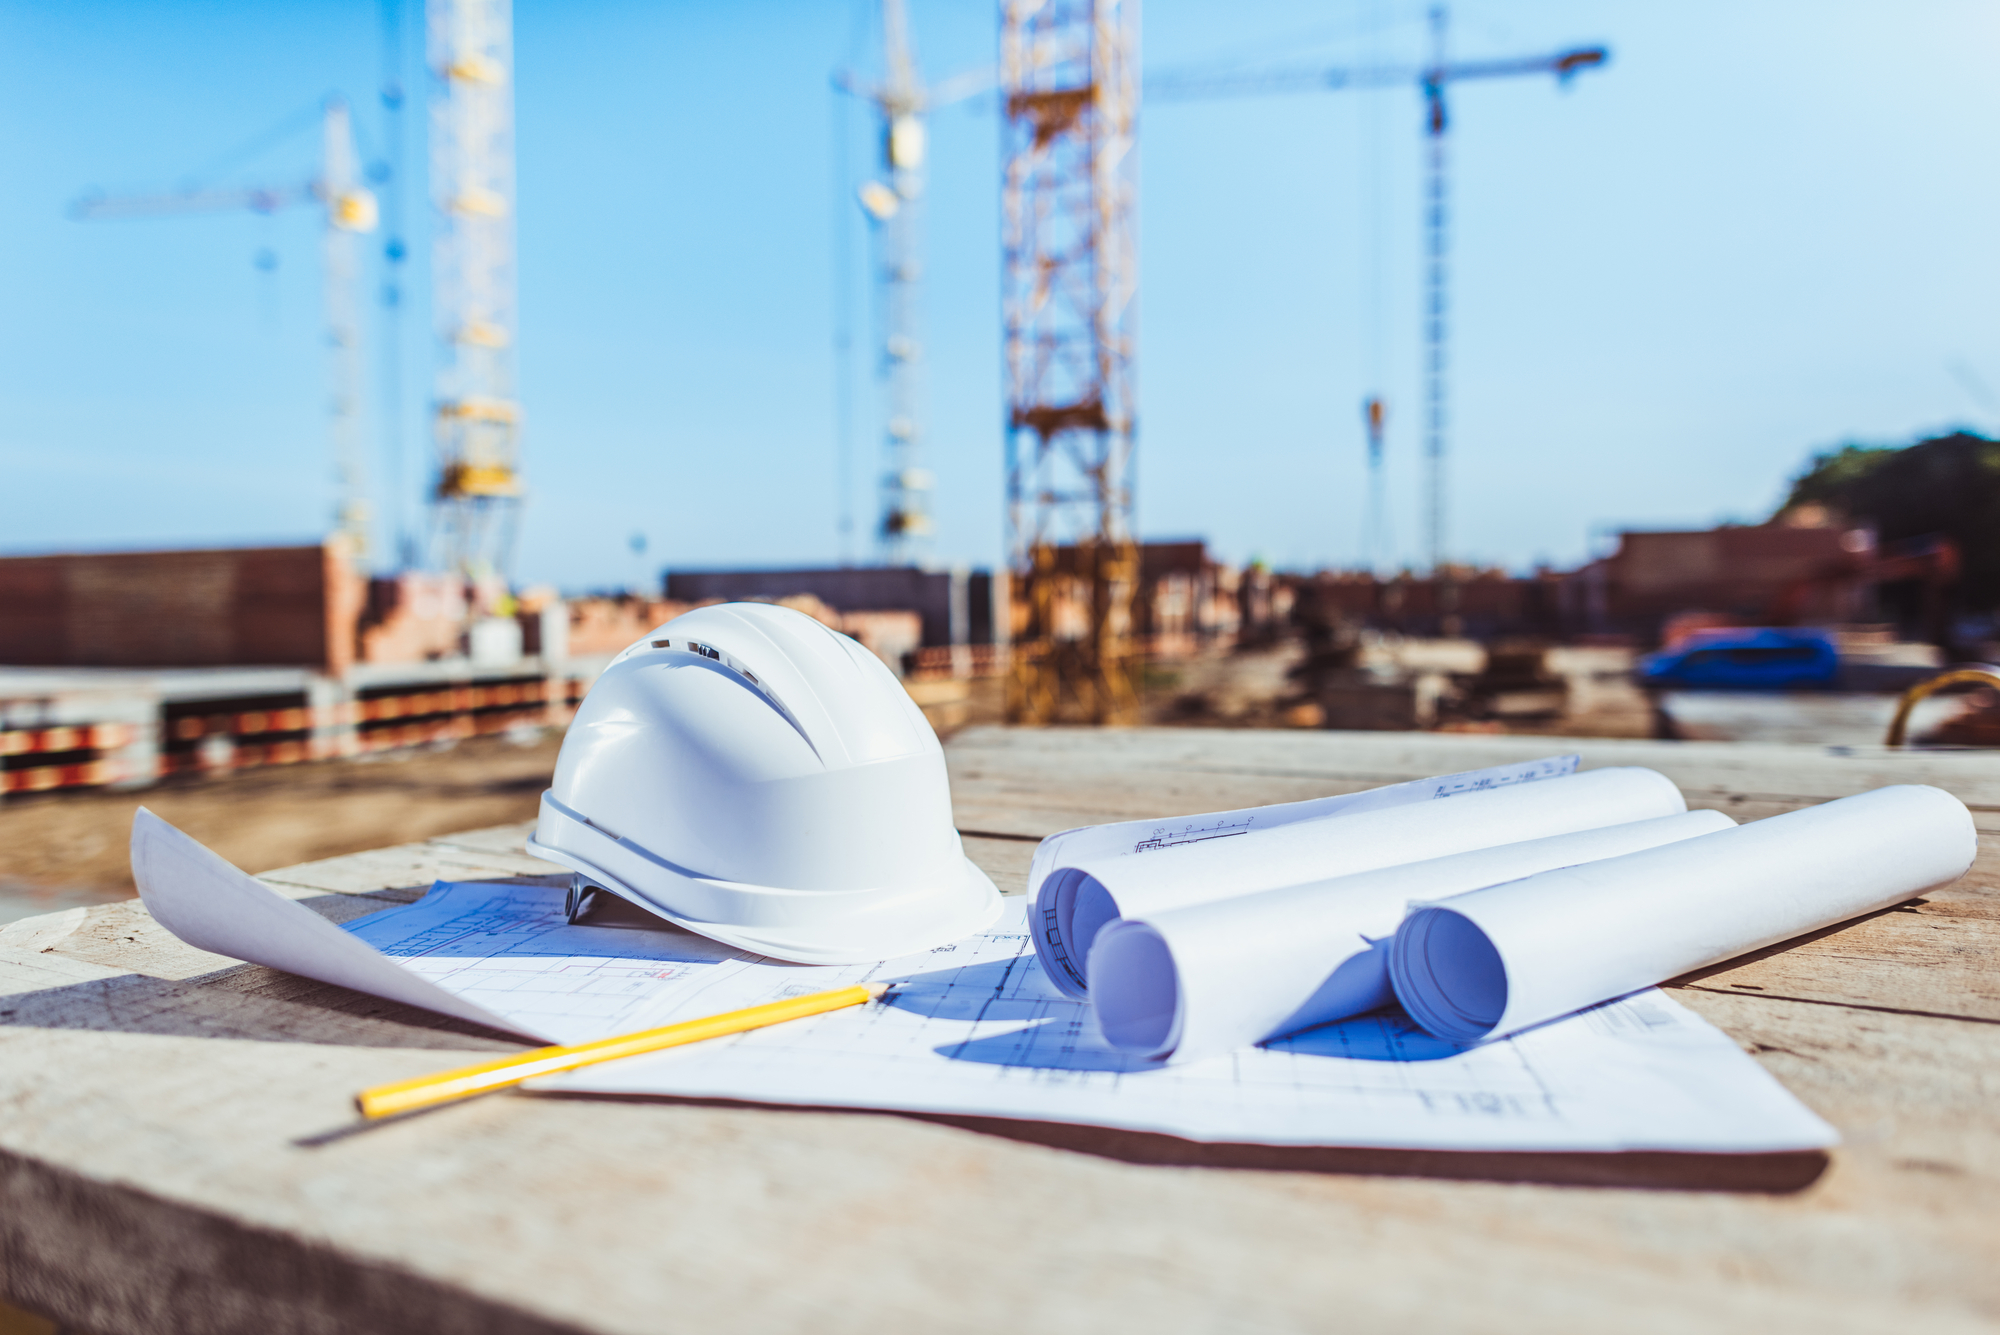 Preventing Mistakes at Construction Sites with Laser Scanning